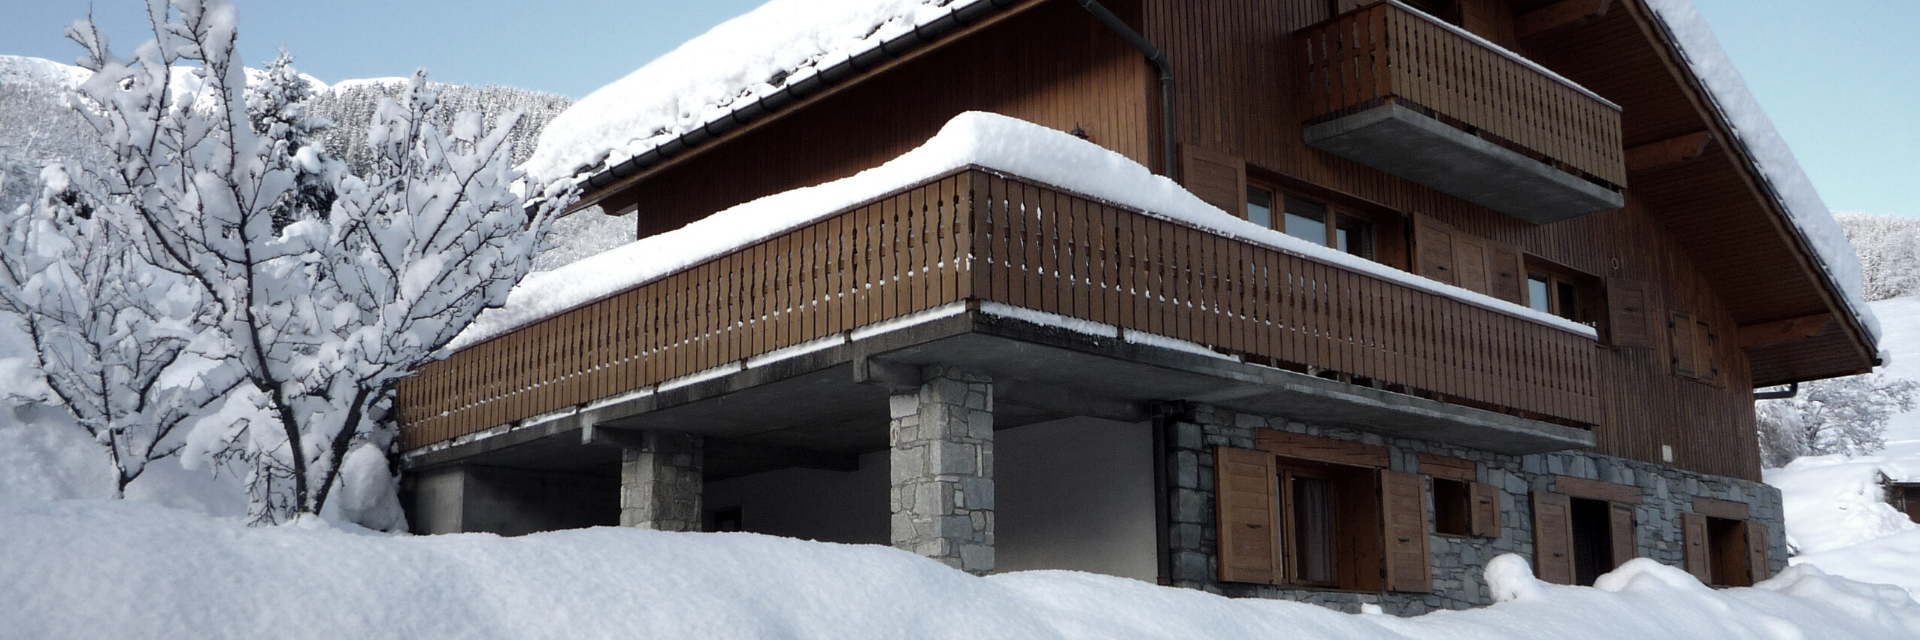 Affordable chalets in one of the worlds top ski resorts.